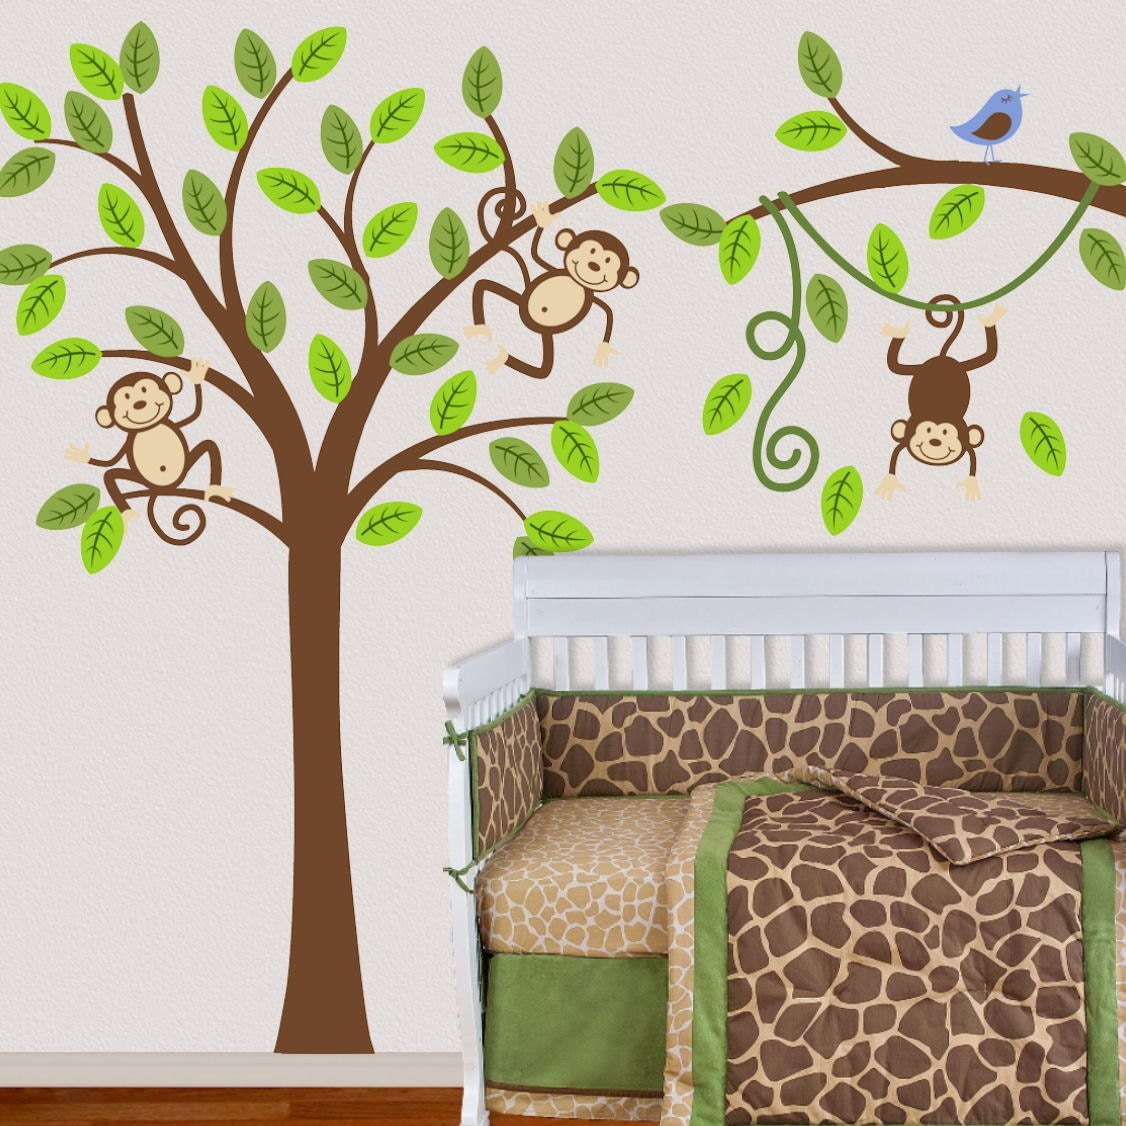 Tree wall decal monkey nursery kids removable wall vinyl decal for Baby room jungle mural